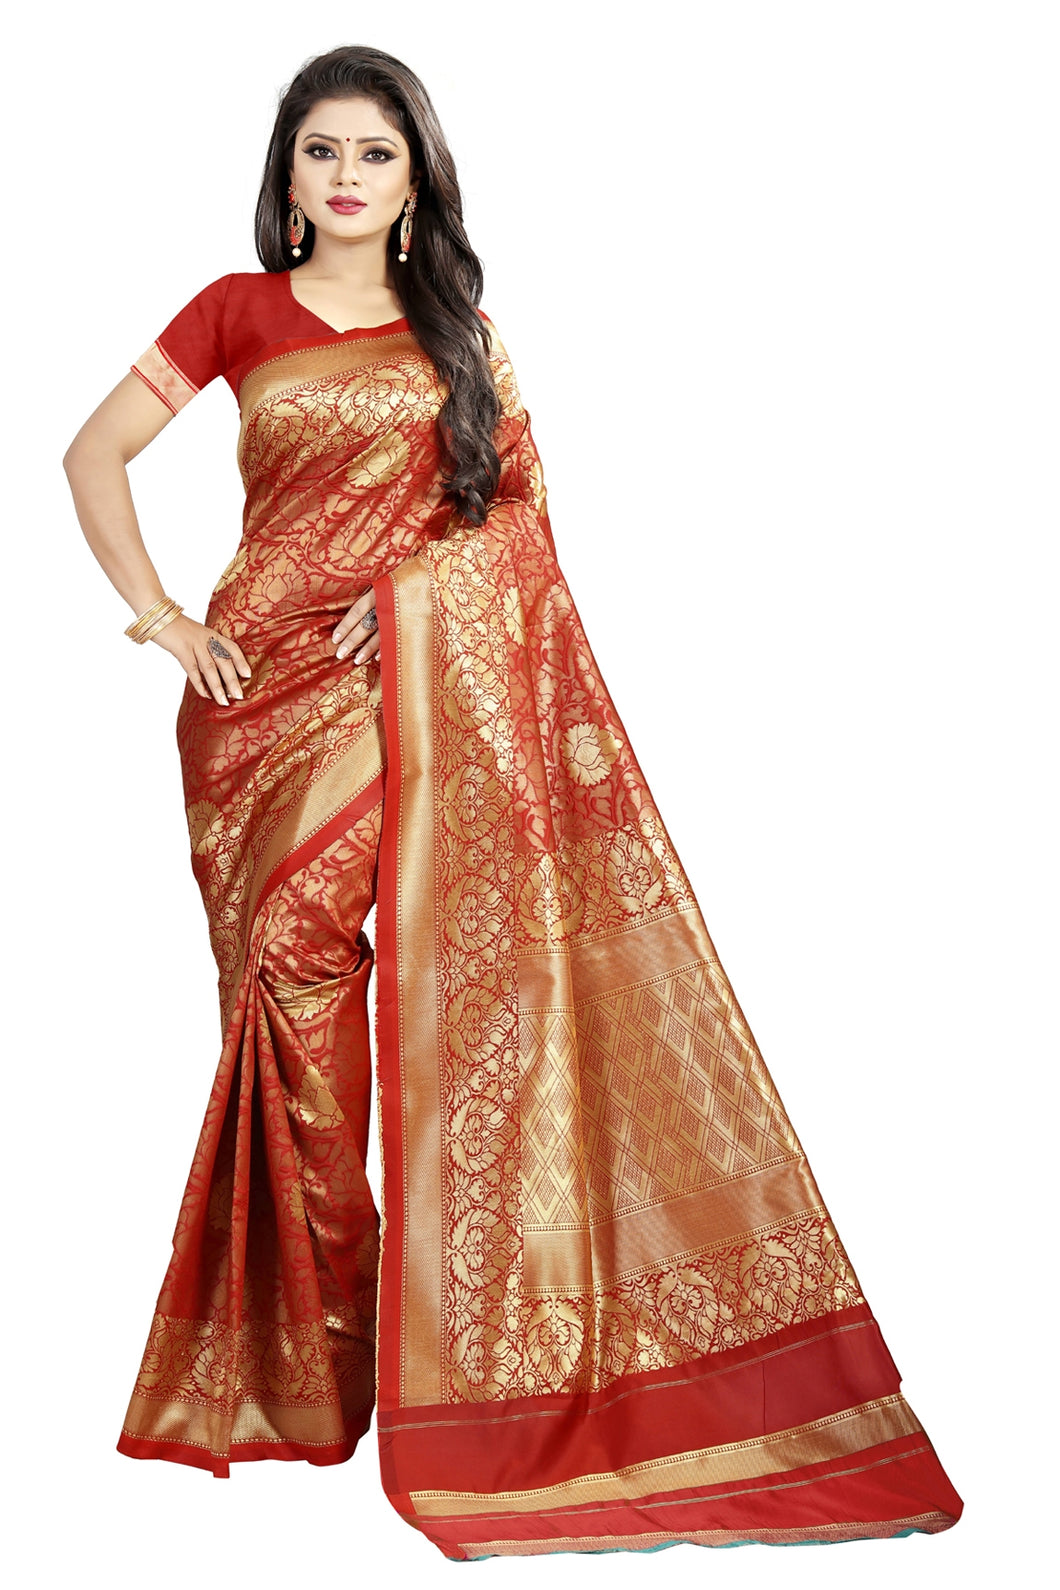 Bhelpuri Maroon Cotton and Jacquard Woven Saree with Blouse Piece